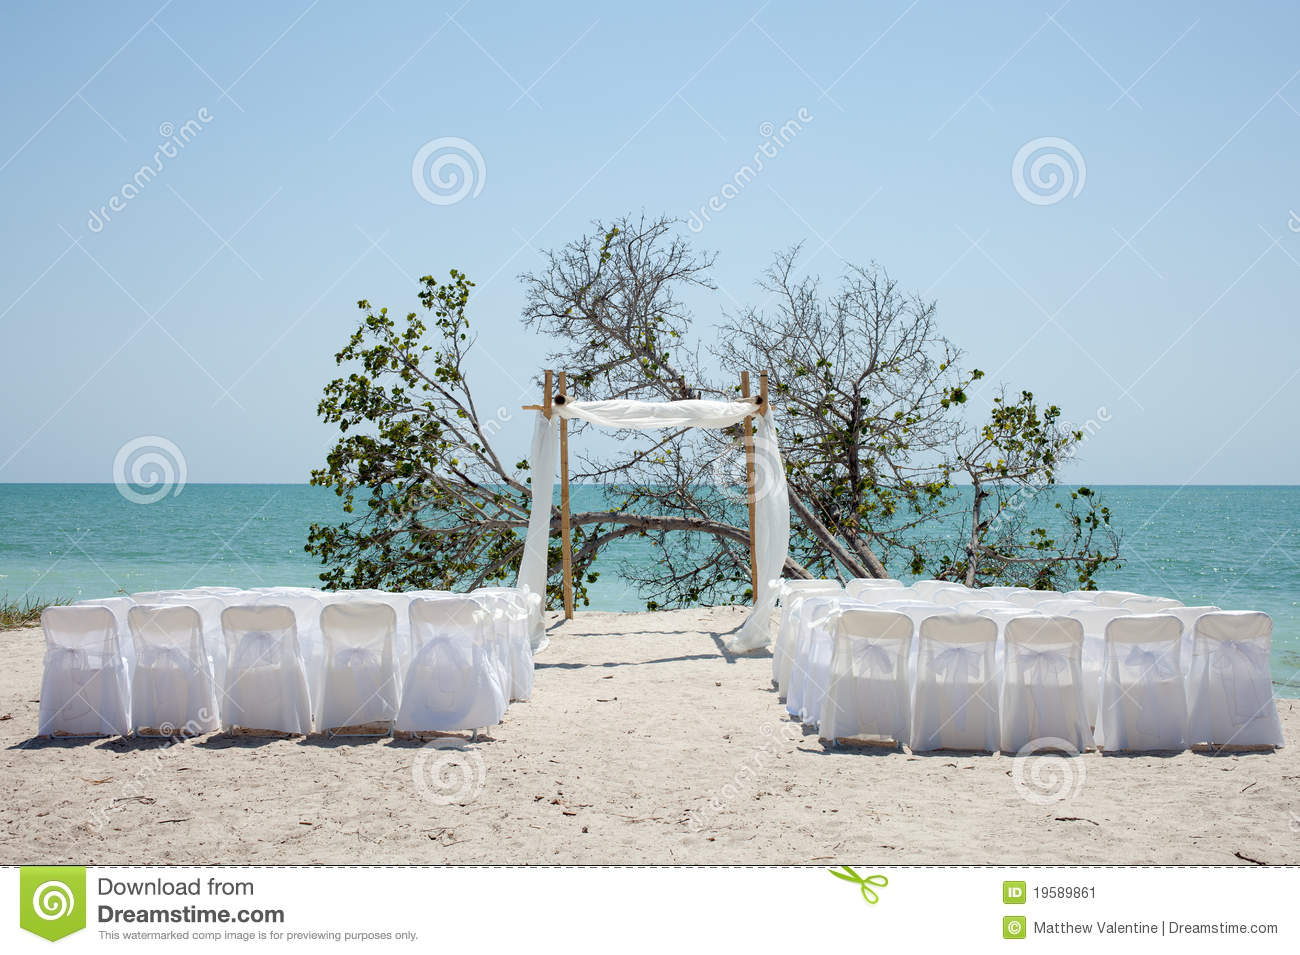 Wedding on the beach - Royalty Free Stock Photo